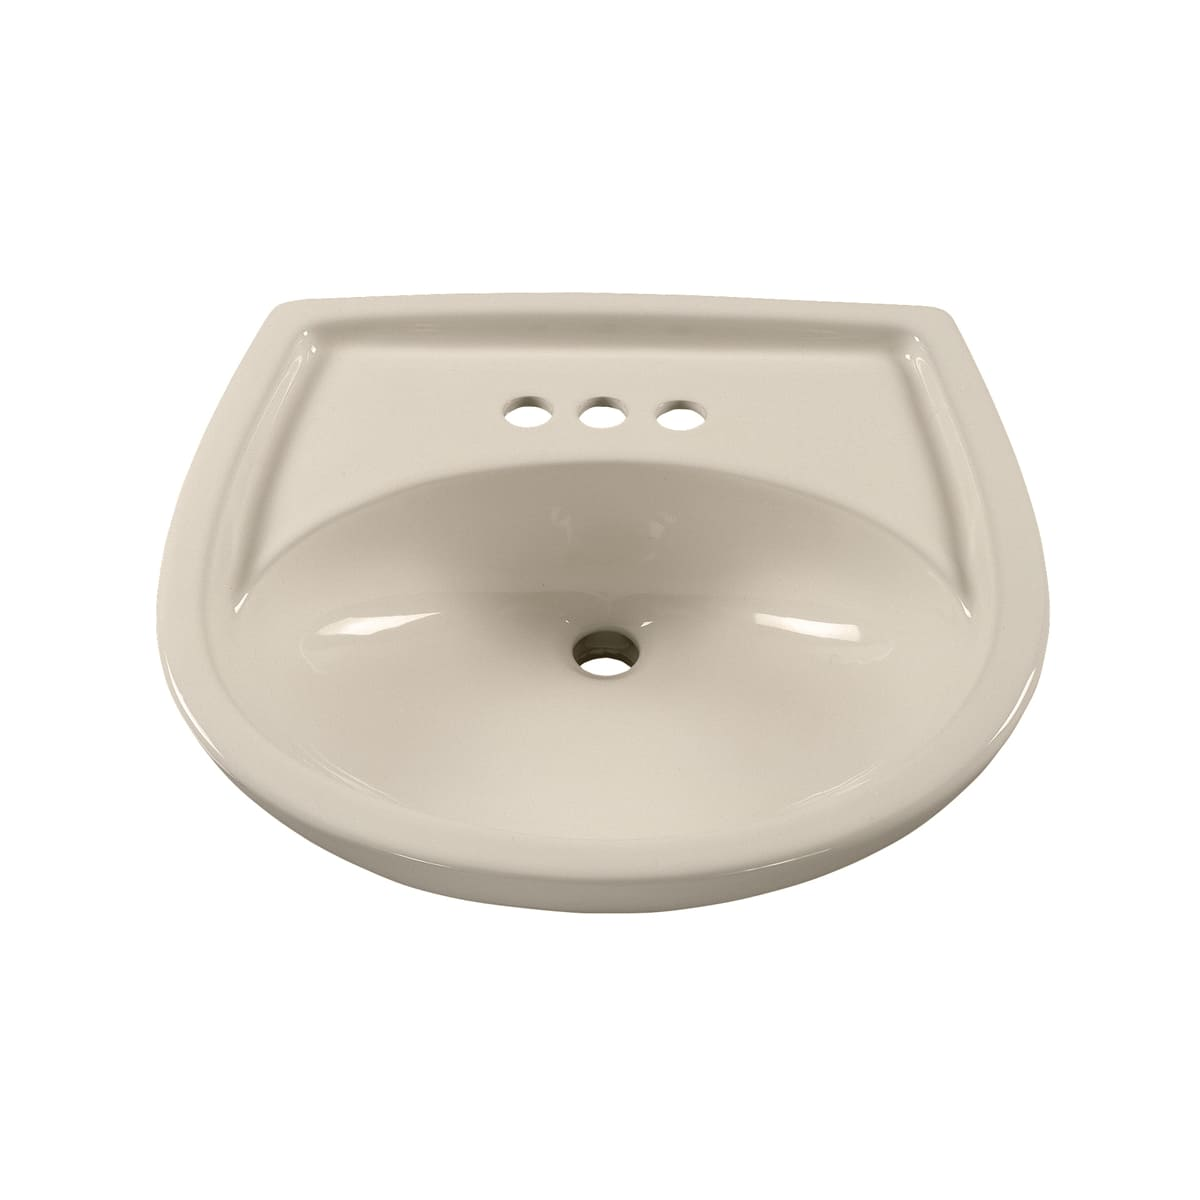 American Standard 0115 404 173 Shell Colony Pedestal Sink Only With 4 Centers 21 1 4 Length And Overflow Faucet Com